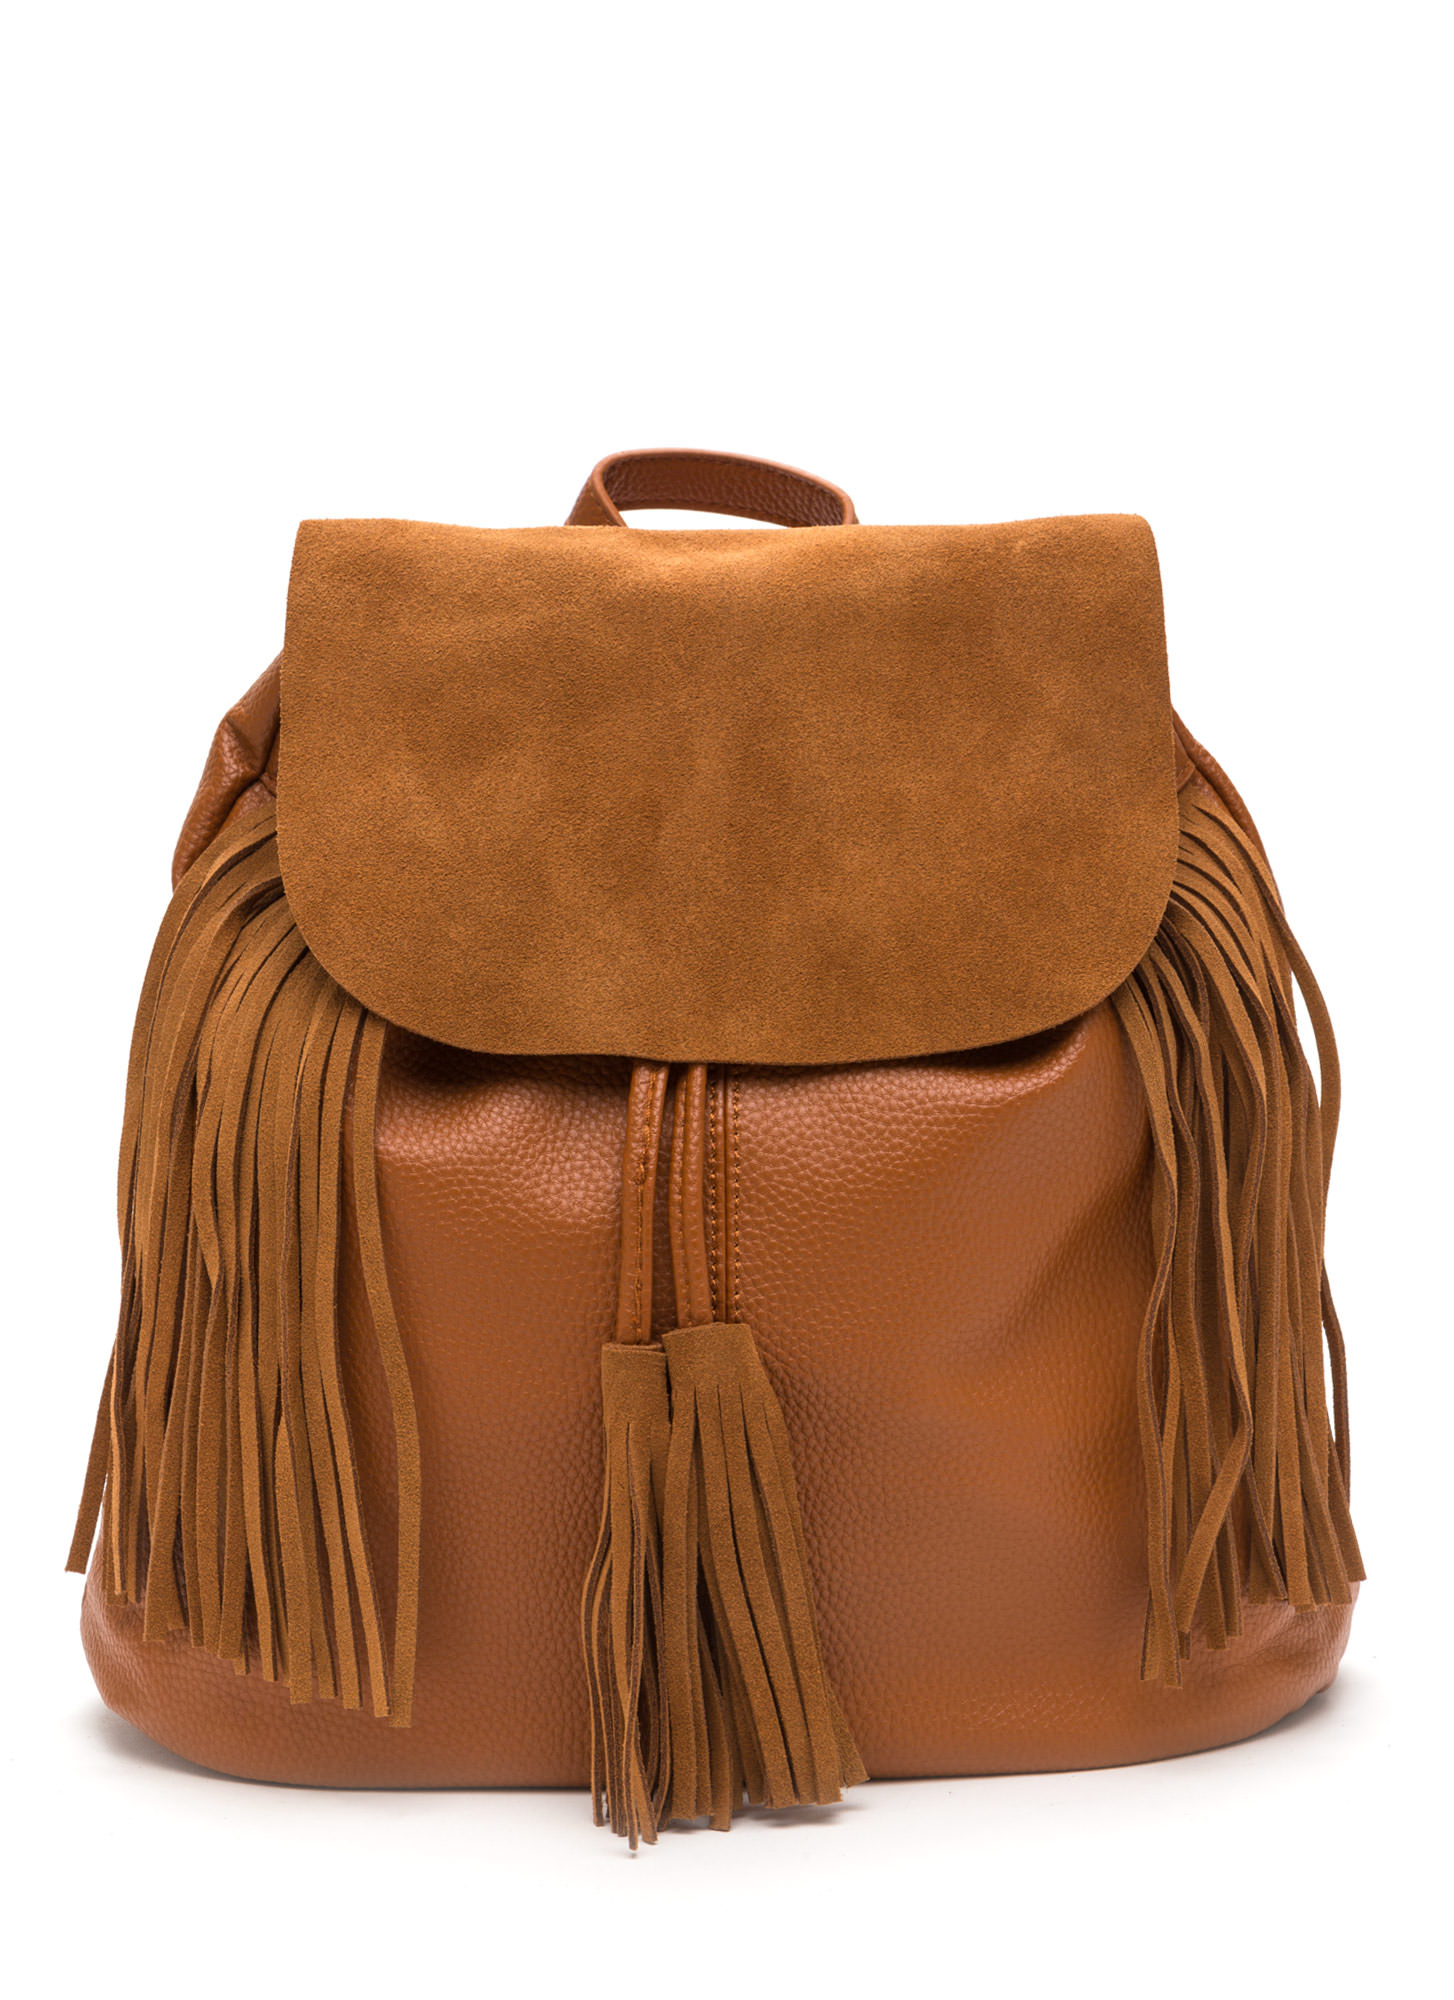 Fringe First Drawstring Backpack CAMEL